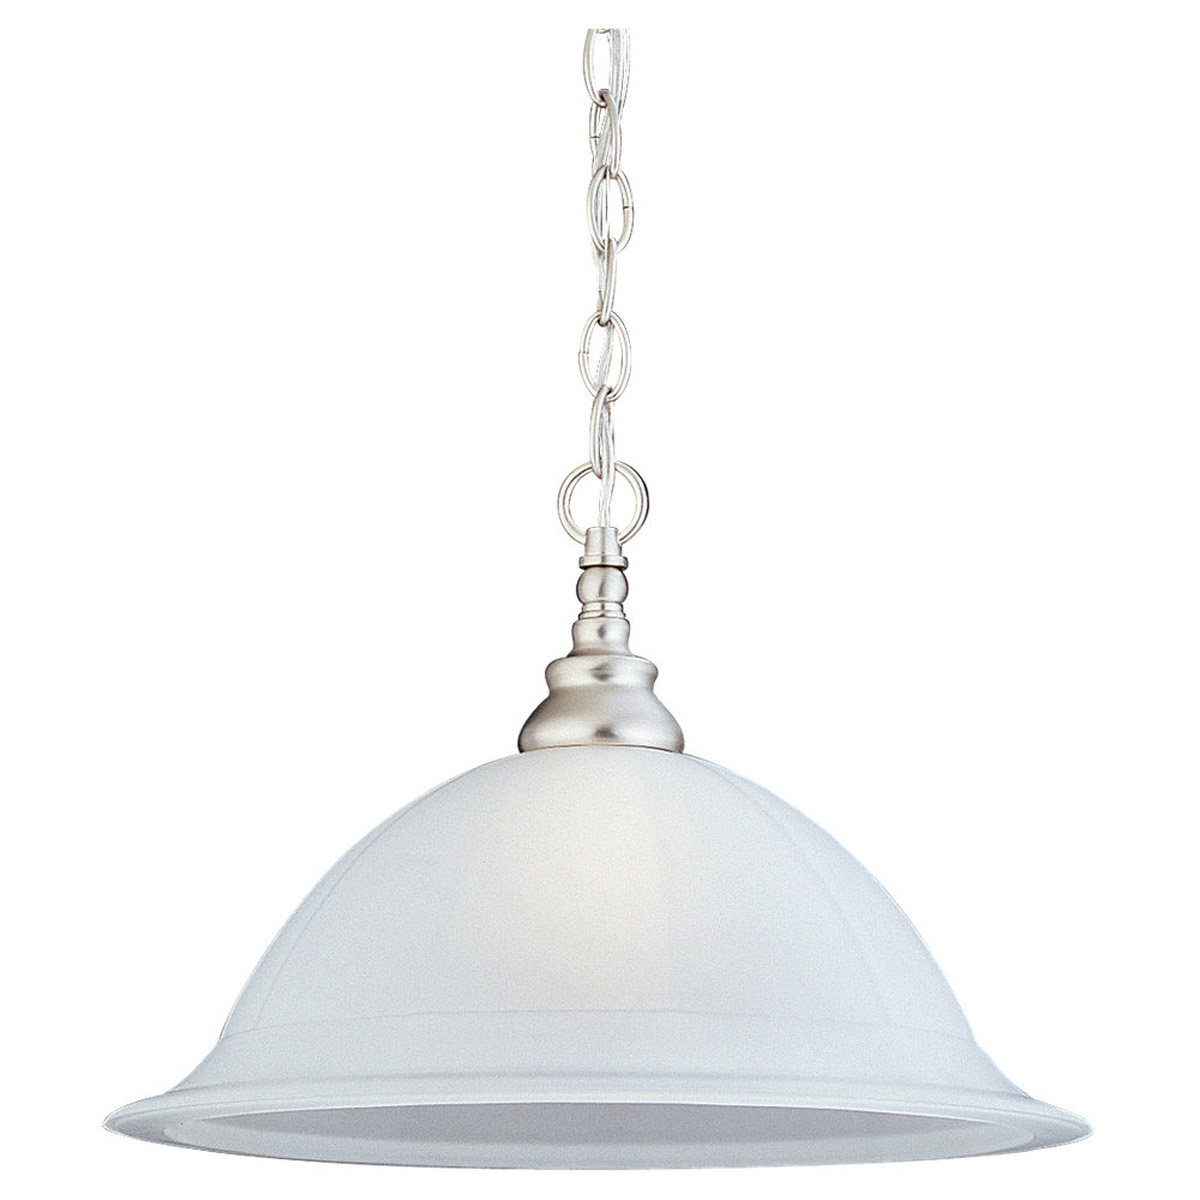 Sea Gull Lighting Canterbury 1 Light Pendant in Brushed Nickel 65050-962 photo